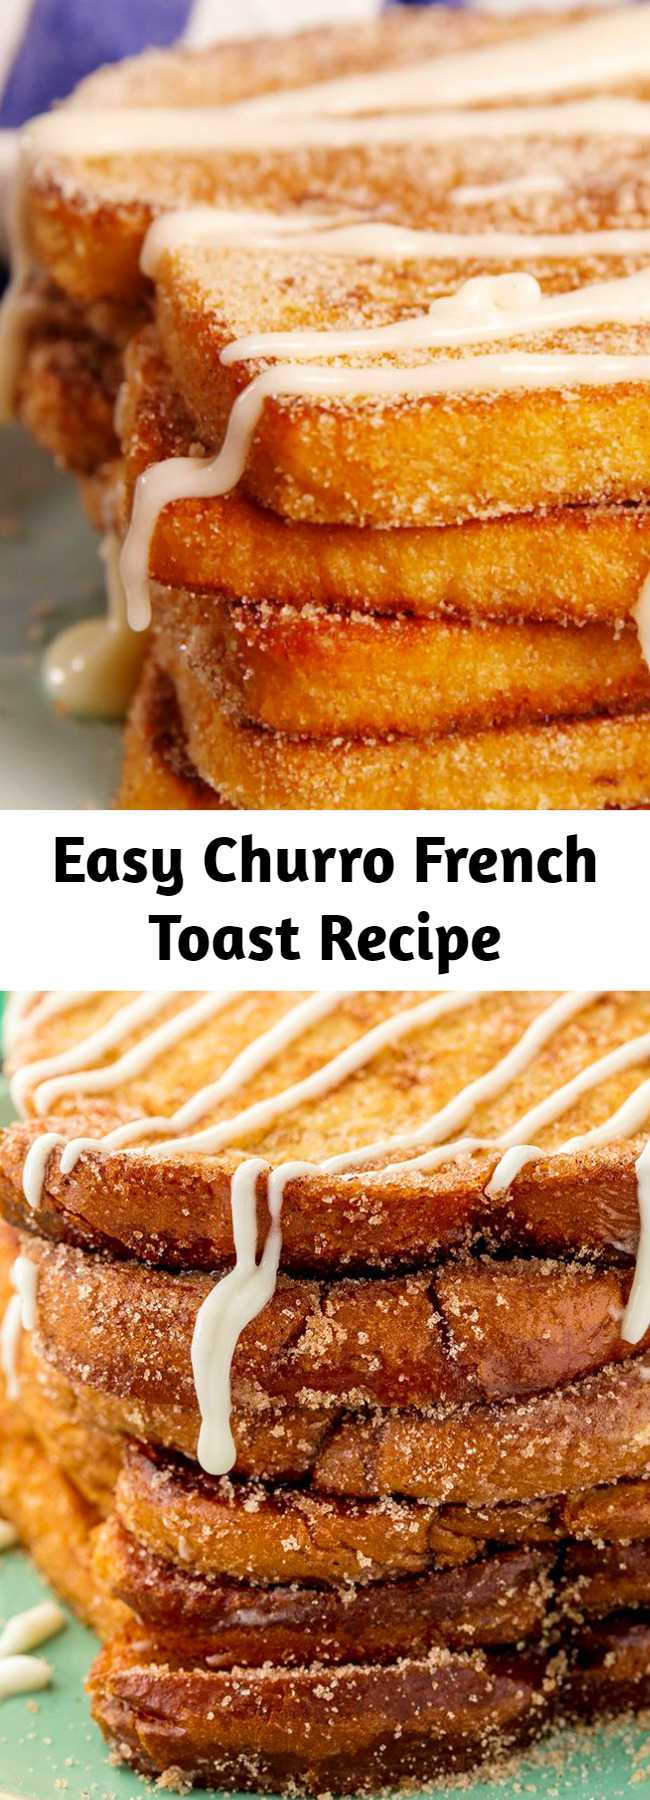 Churro-fy your breakfast! 😏 #easy #recipe #churro #frenchtoast #breakfast #cinnamon #sugar #brunch